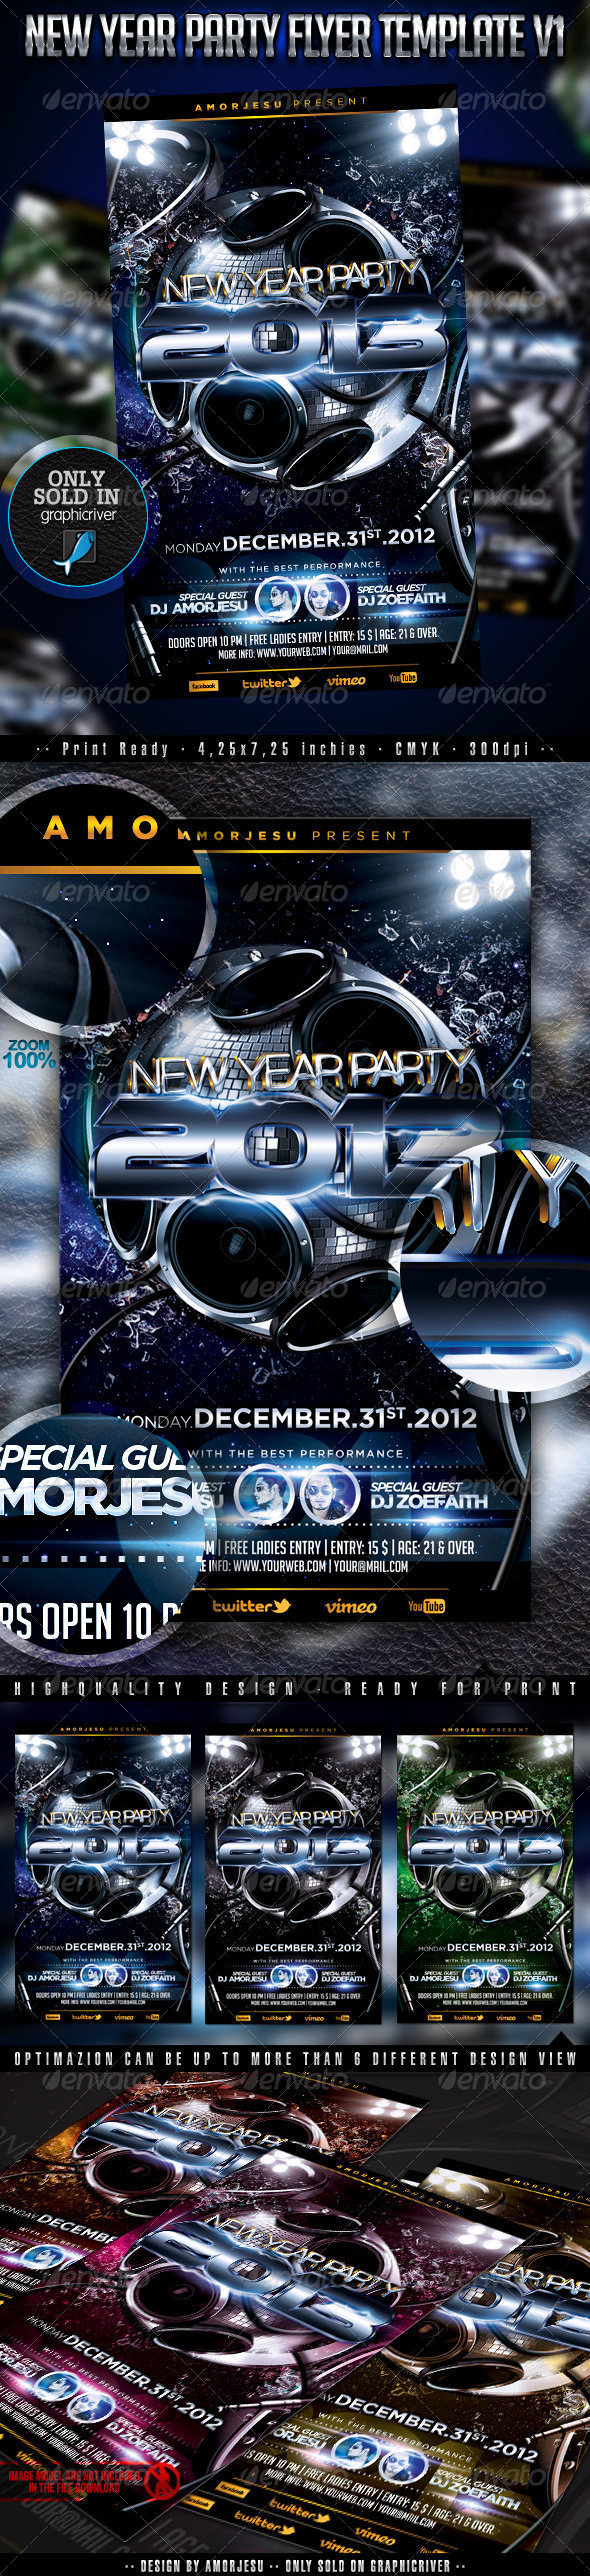 New Year Party Flyer Template V1 - Events Flyers